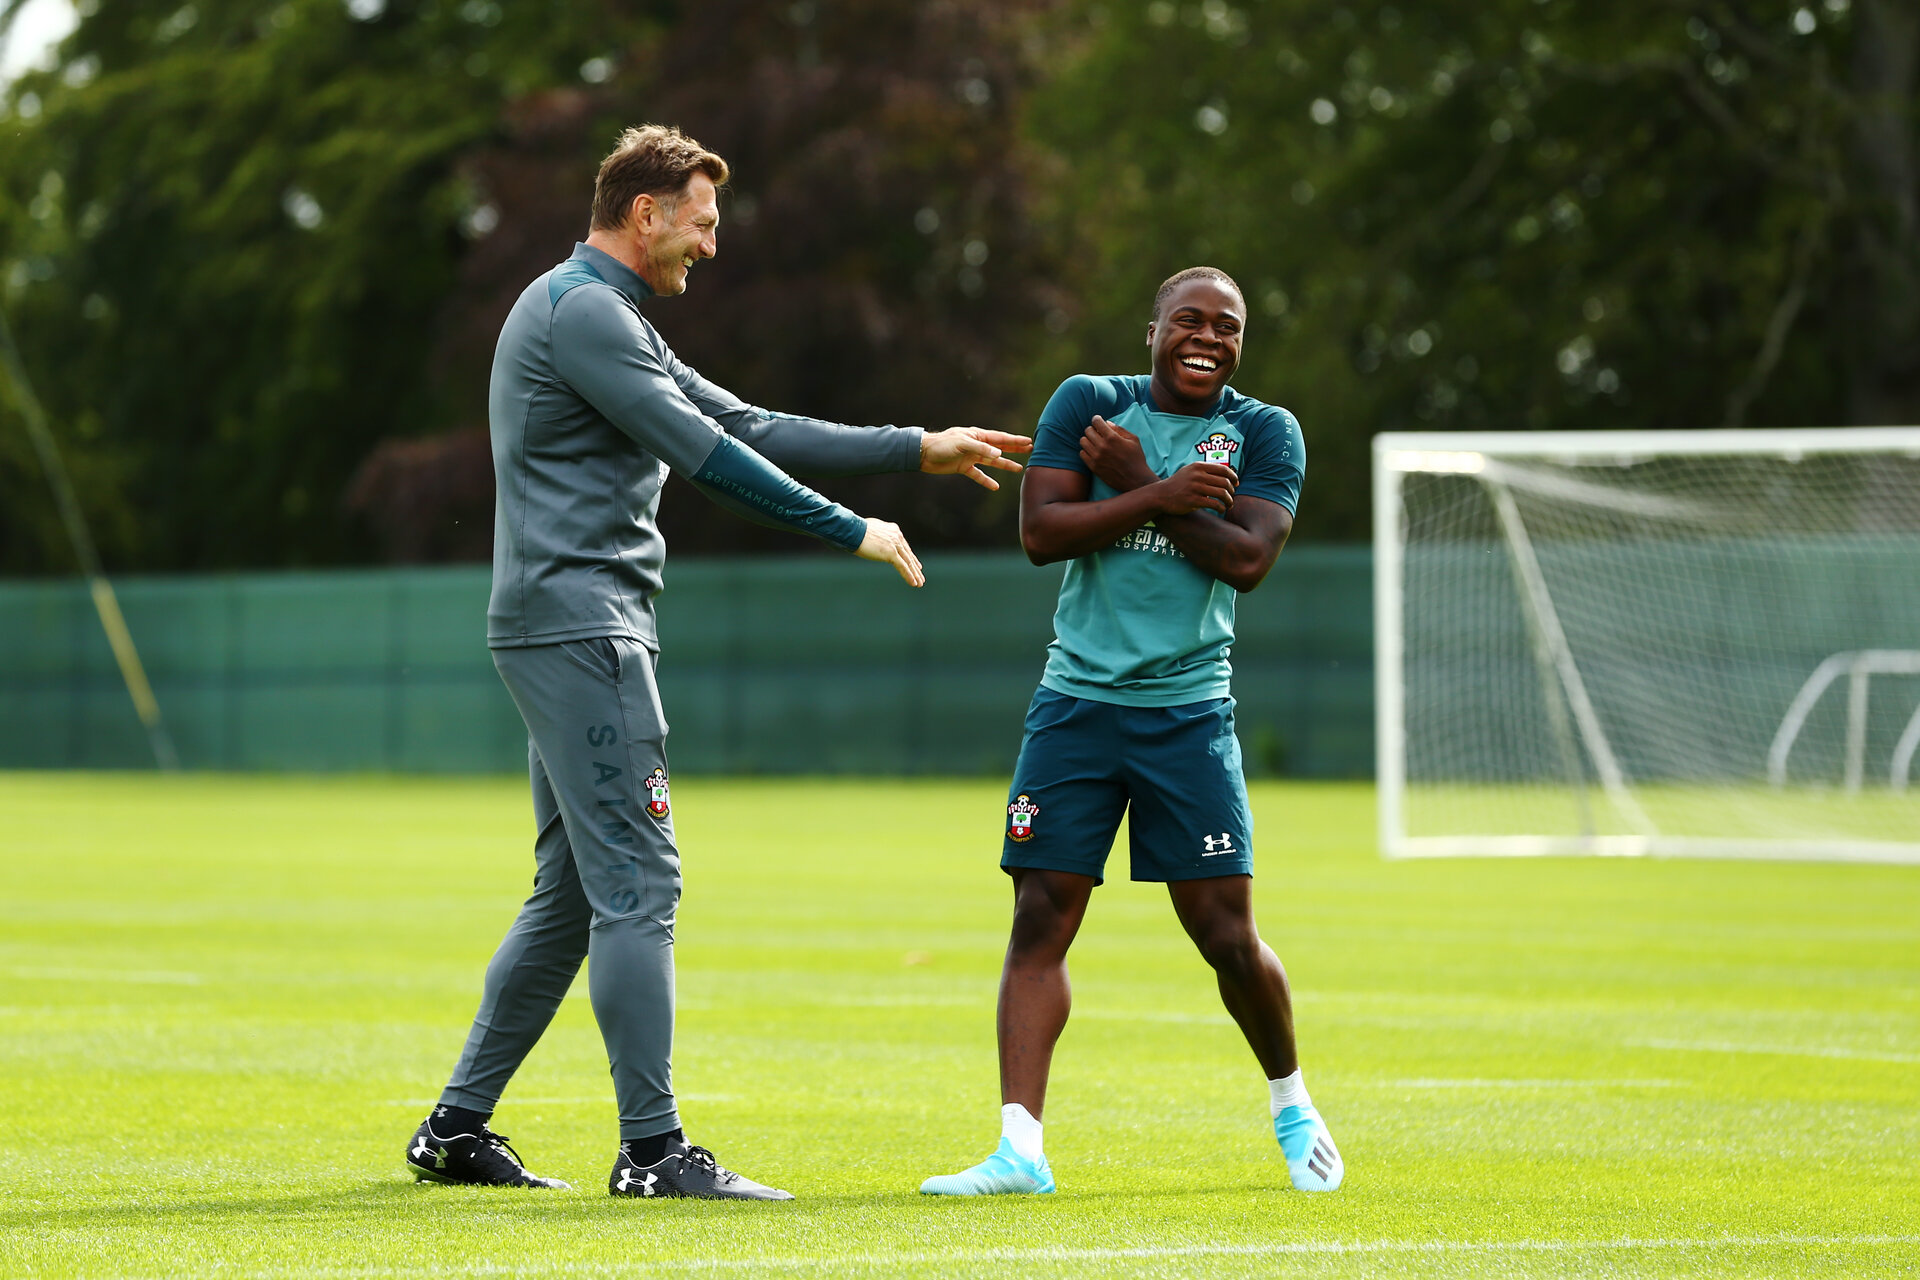 DUBLIN, ENGLAND - JULY 24: LtoR Ralph Hasenhuttl with Michael Obafemi during a Southampton FC training session pictured at Carton House Spa and Resort for Pre-Season Training on July 24, 2019 in Southampton, England. (Photo by James Bridle - Southampton FC/Southampton FC via Getty Images)